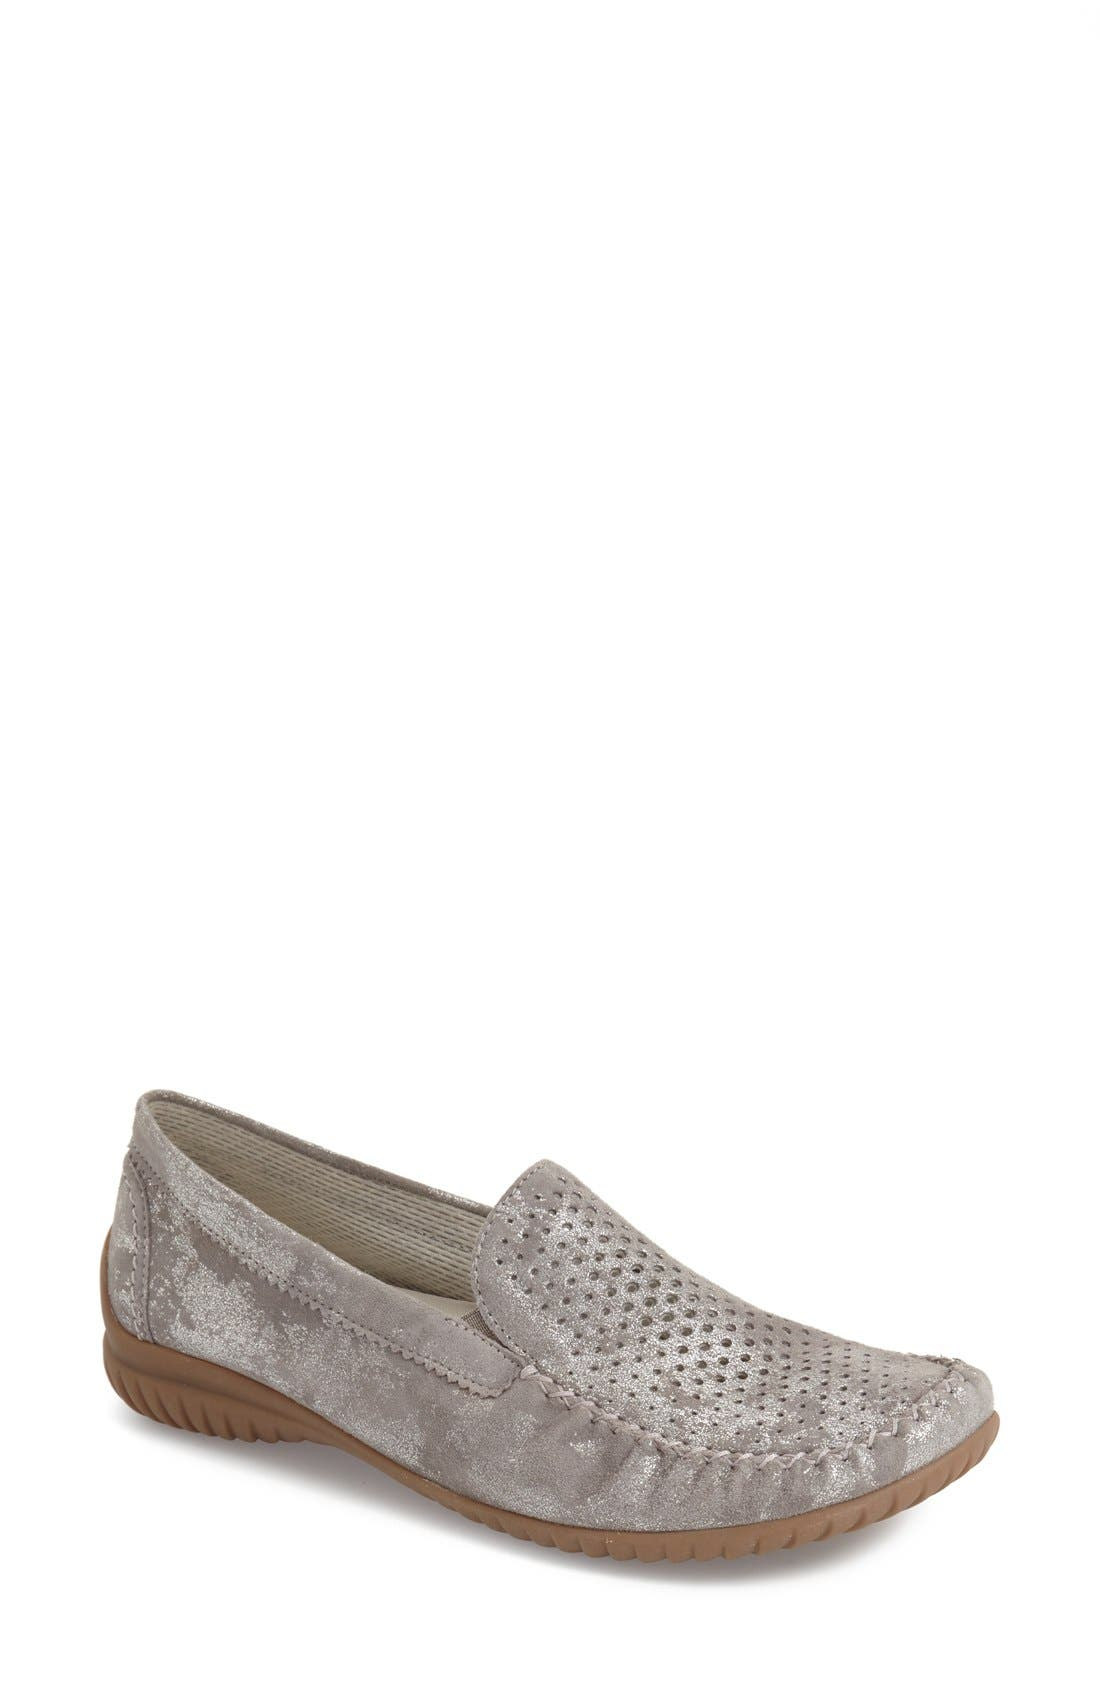 Perforated Loafer,                             Main thumbnail 1, color,                             GREY CARUSO LEATHER